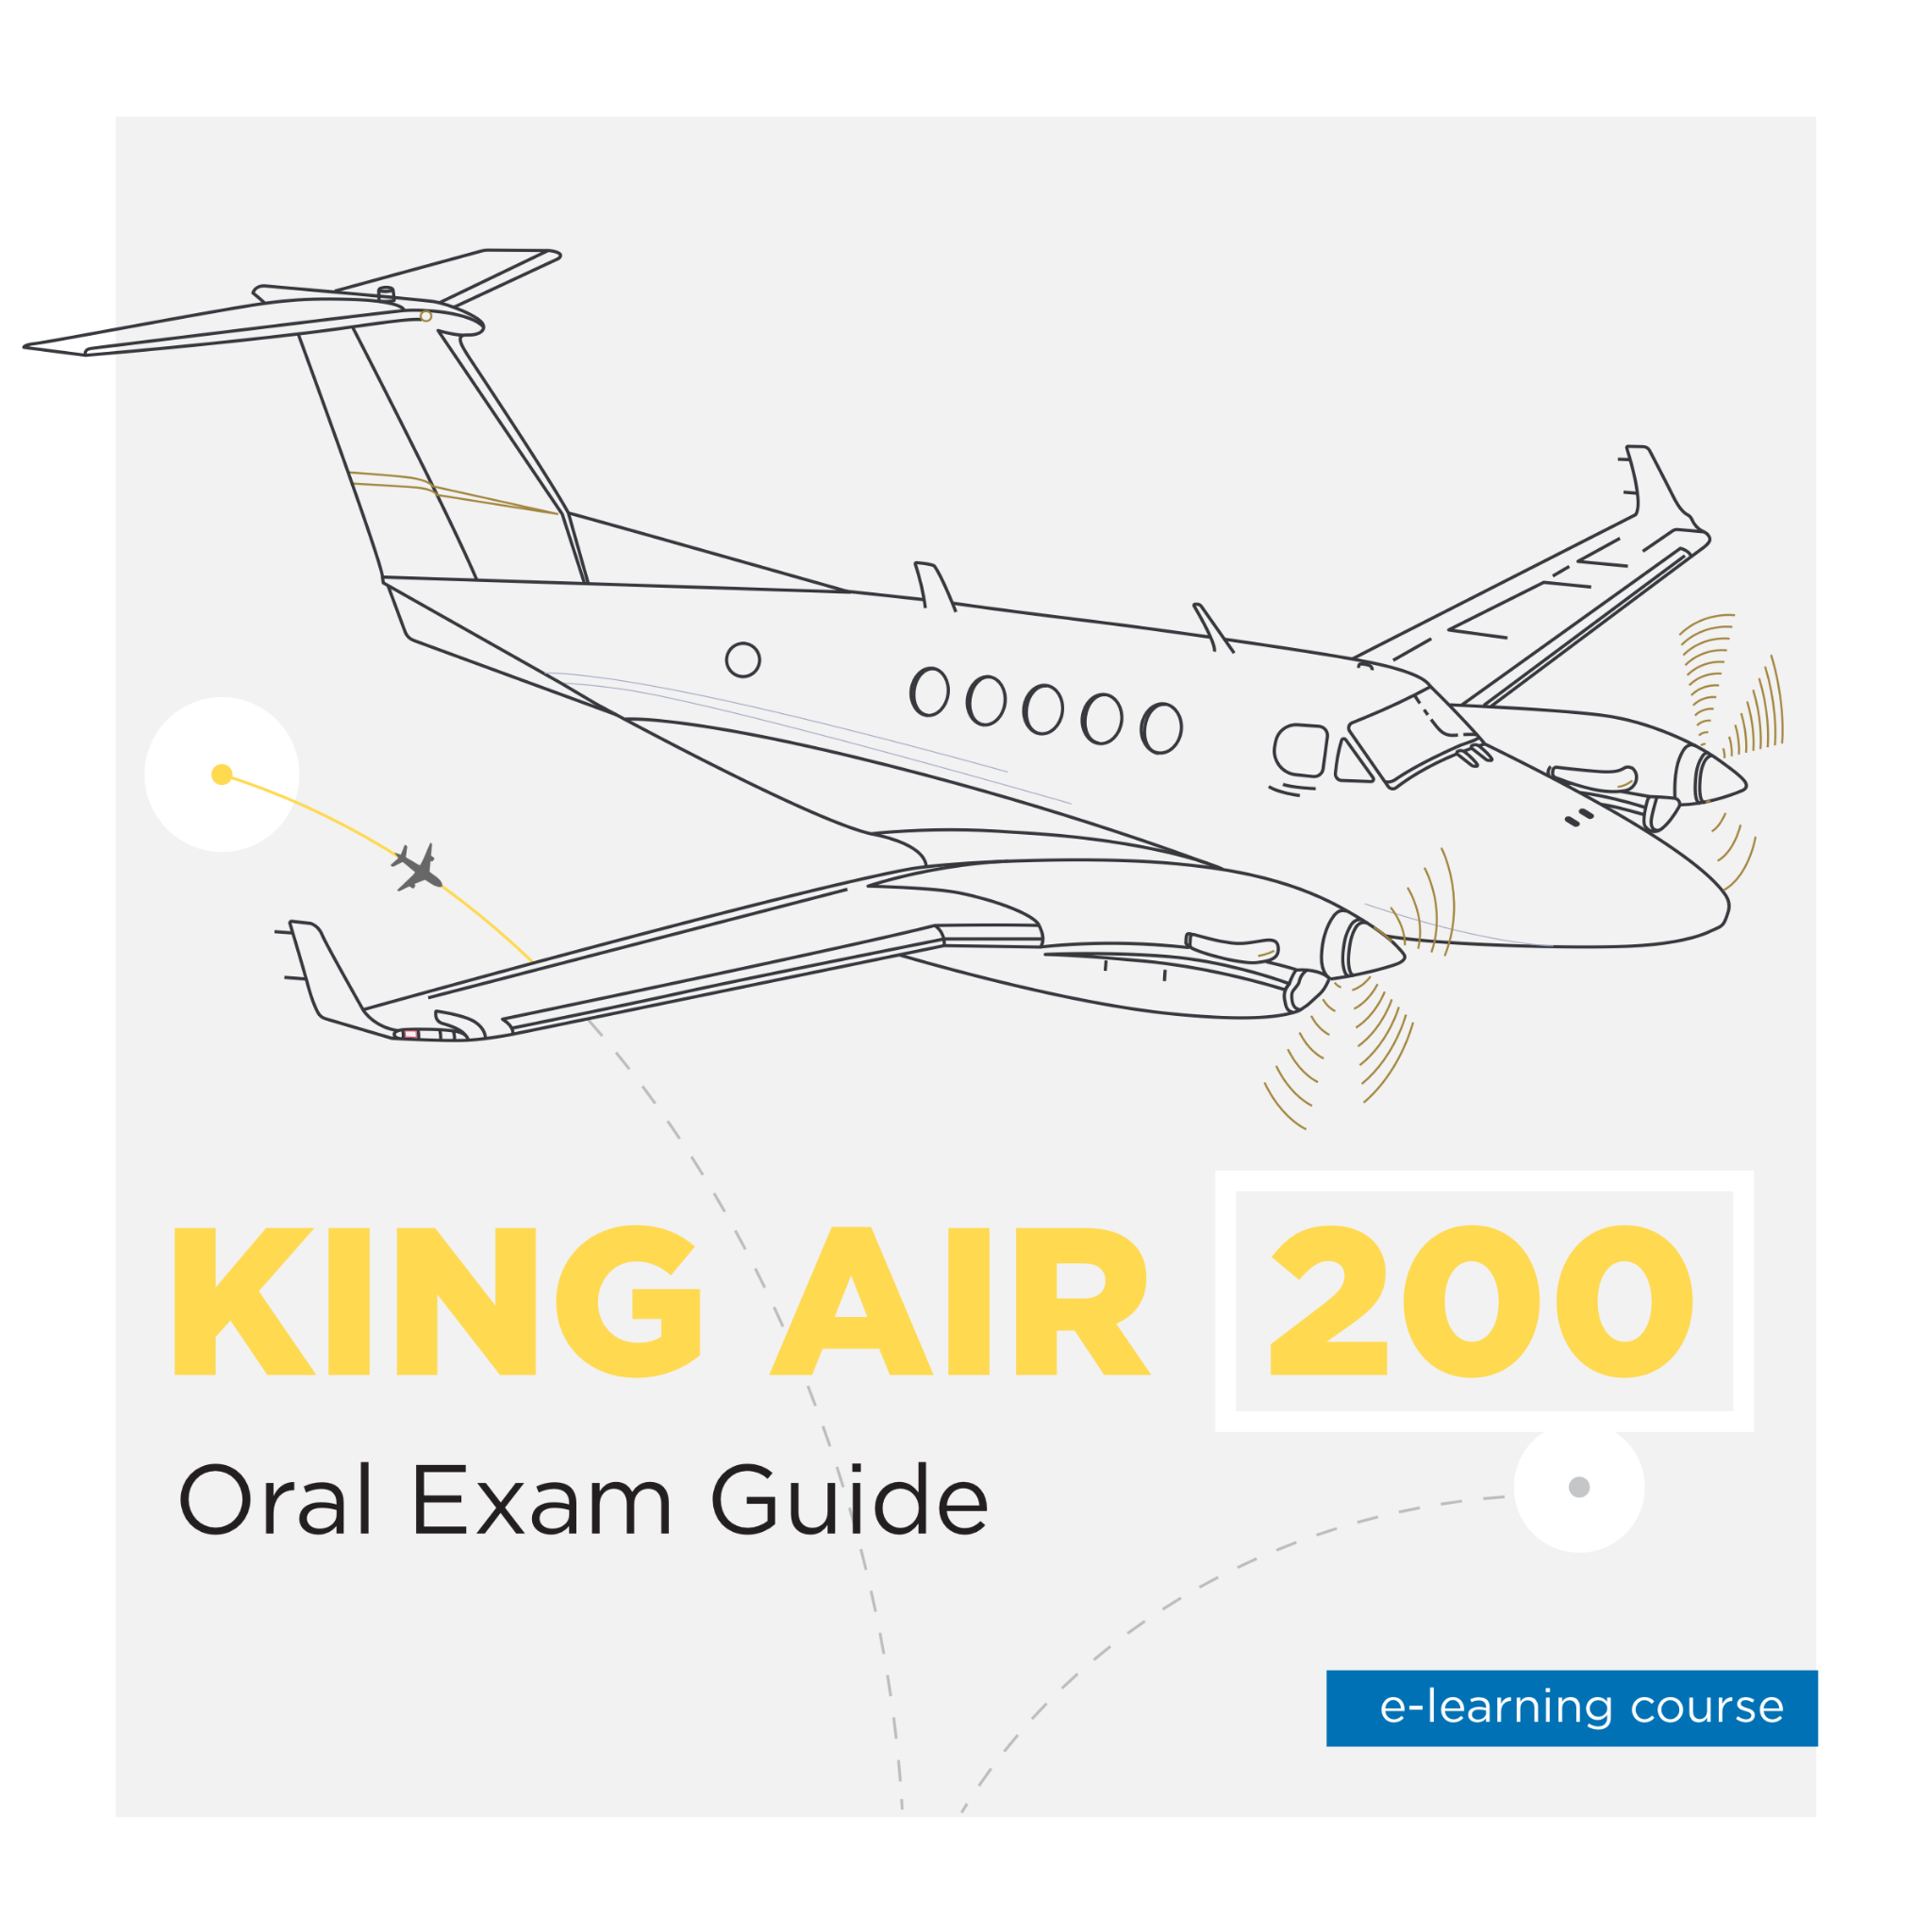 King Air 200 Oral Exam Guide E-Learning Course